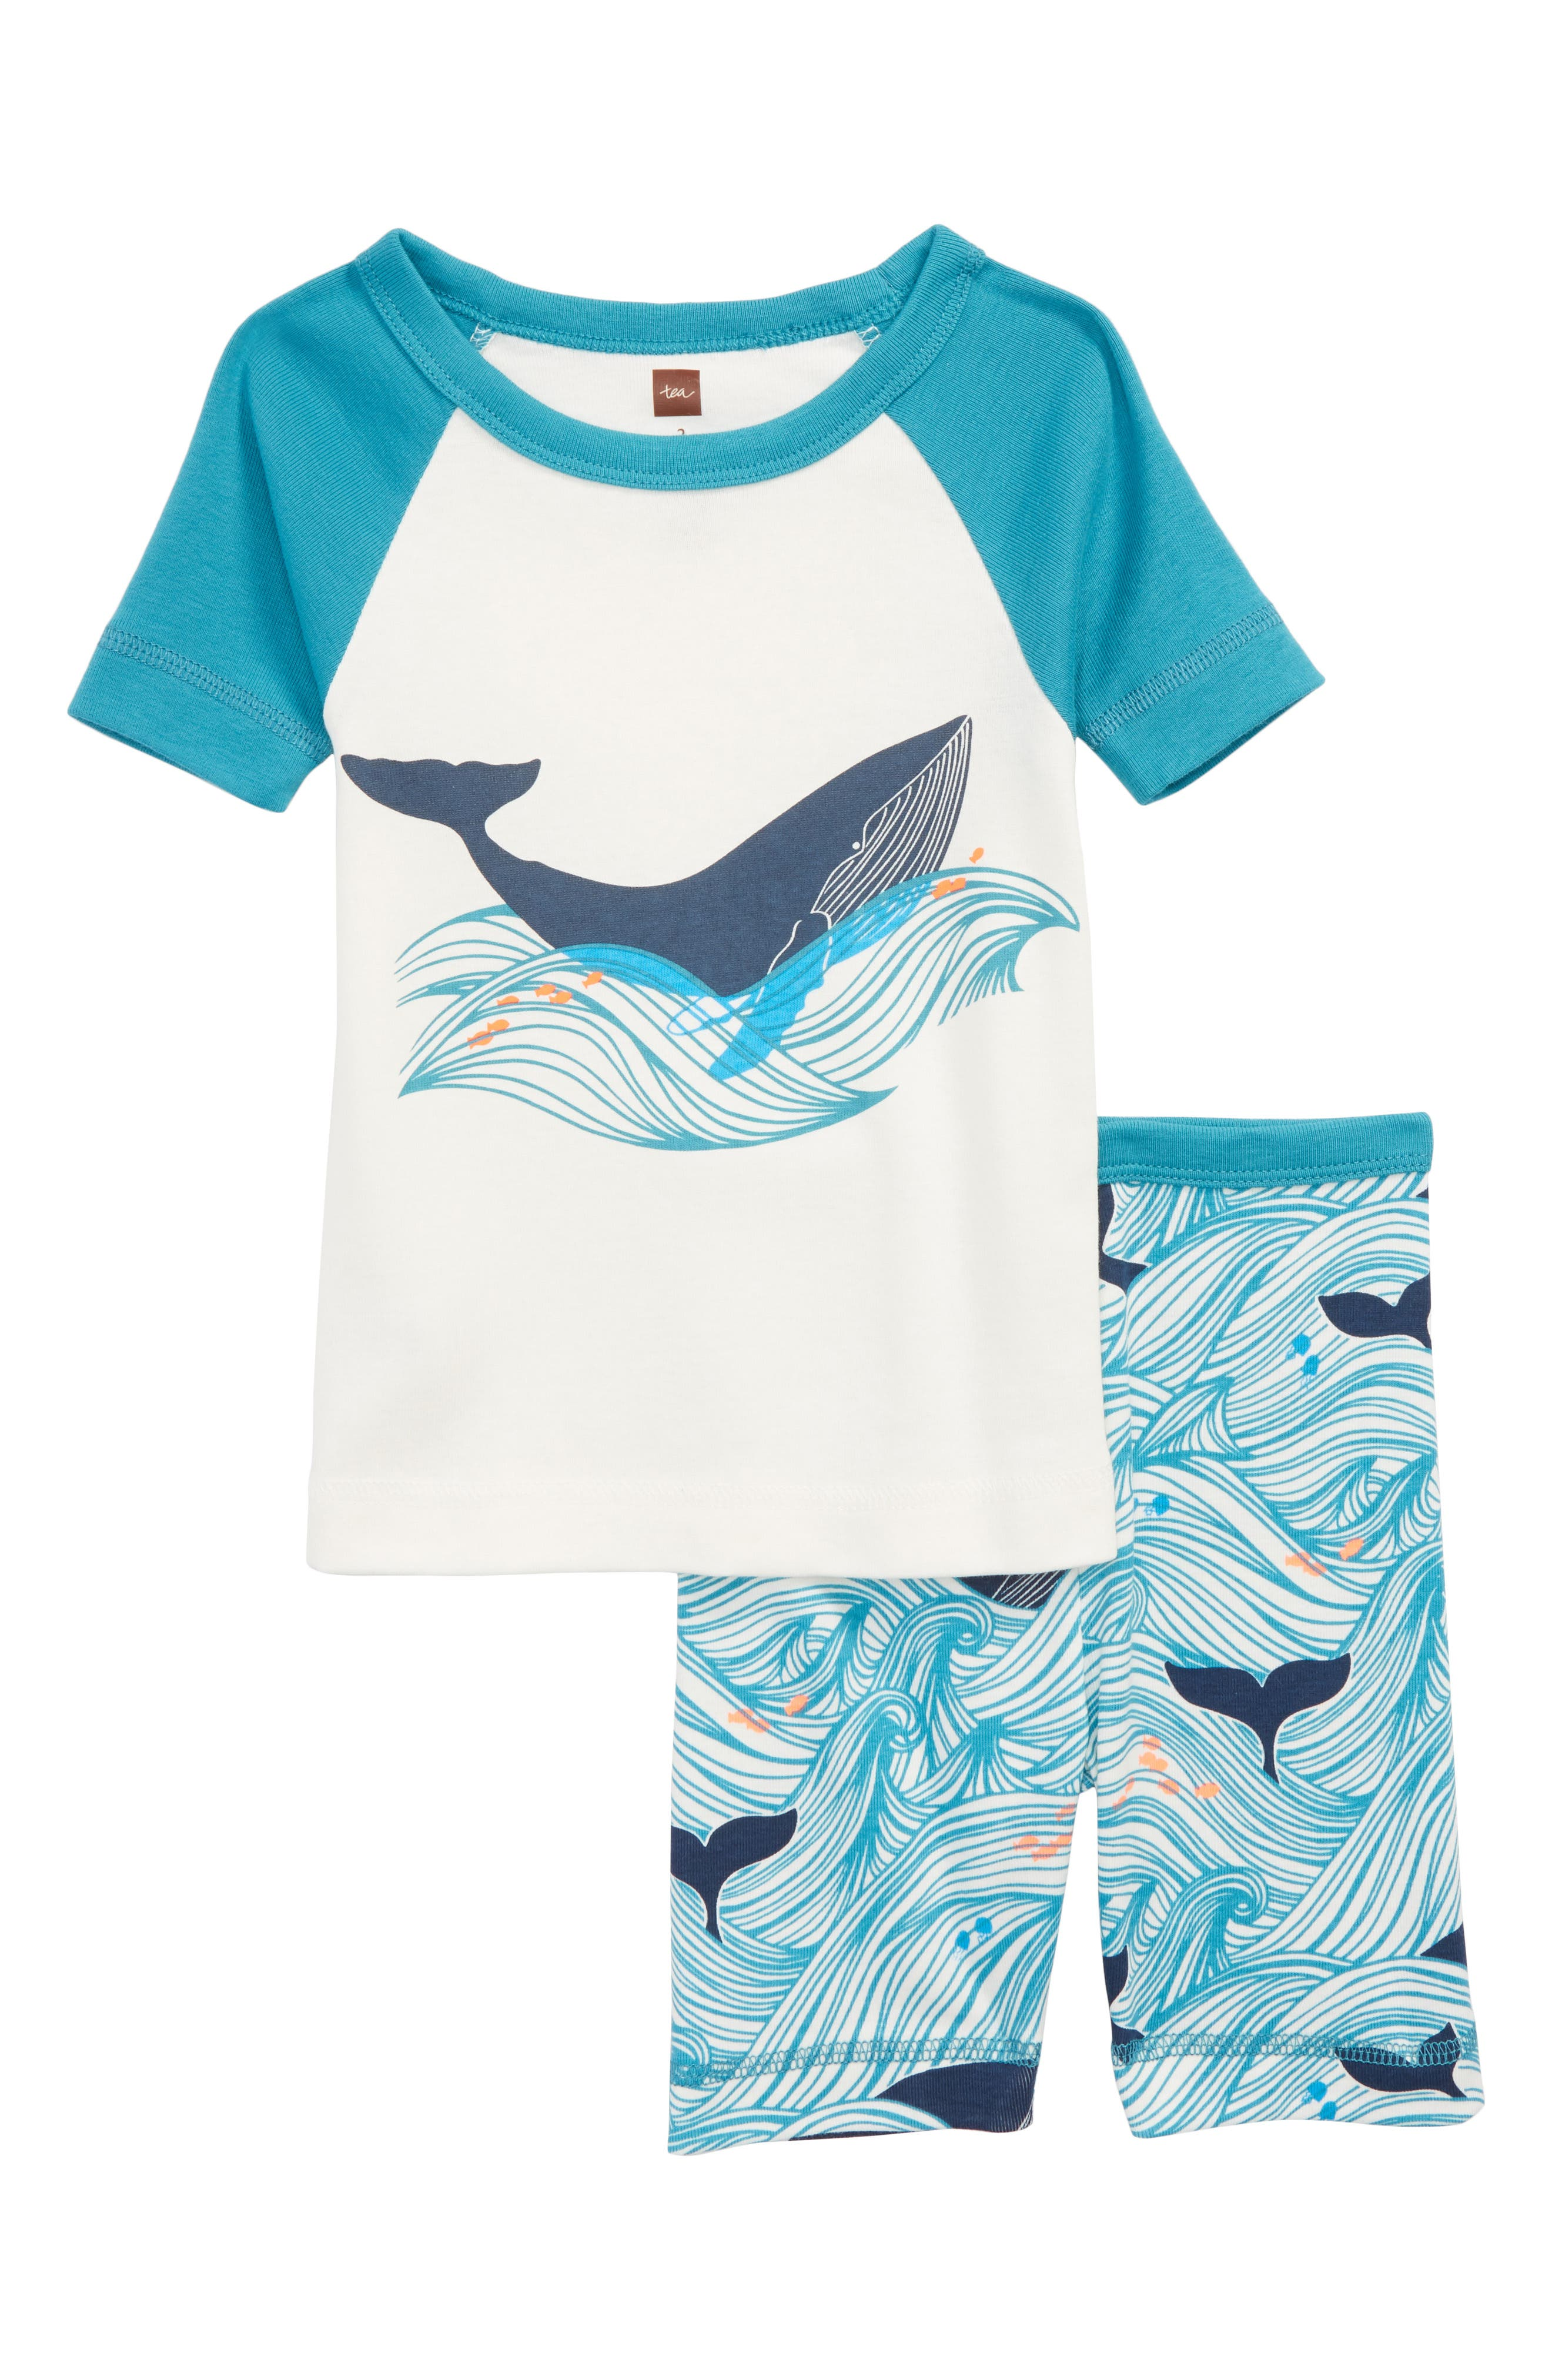 Wavy Whale Fitted Two-Piece Short Pajamas,                             Main thumbnail 1, color,                             Pagoda Blue